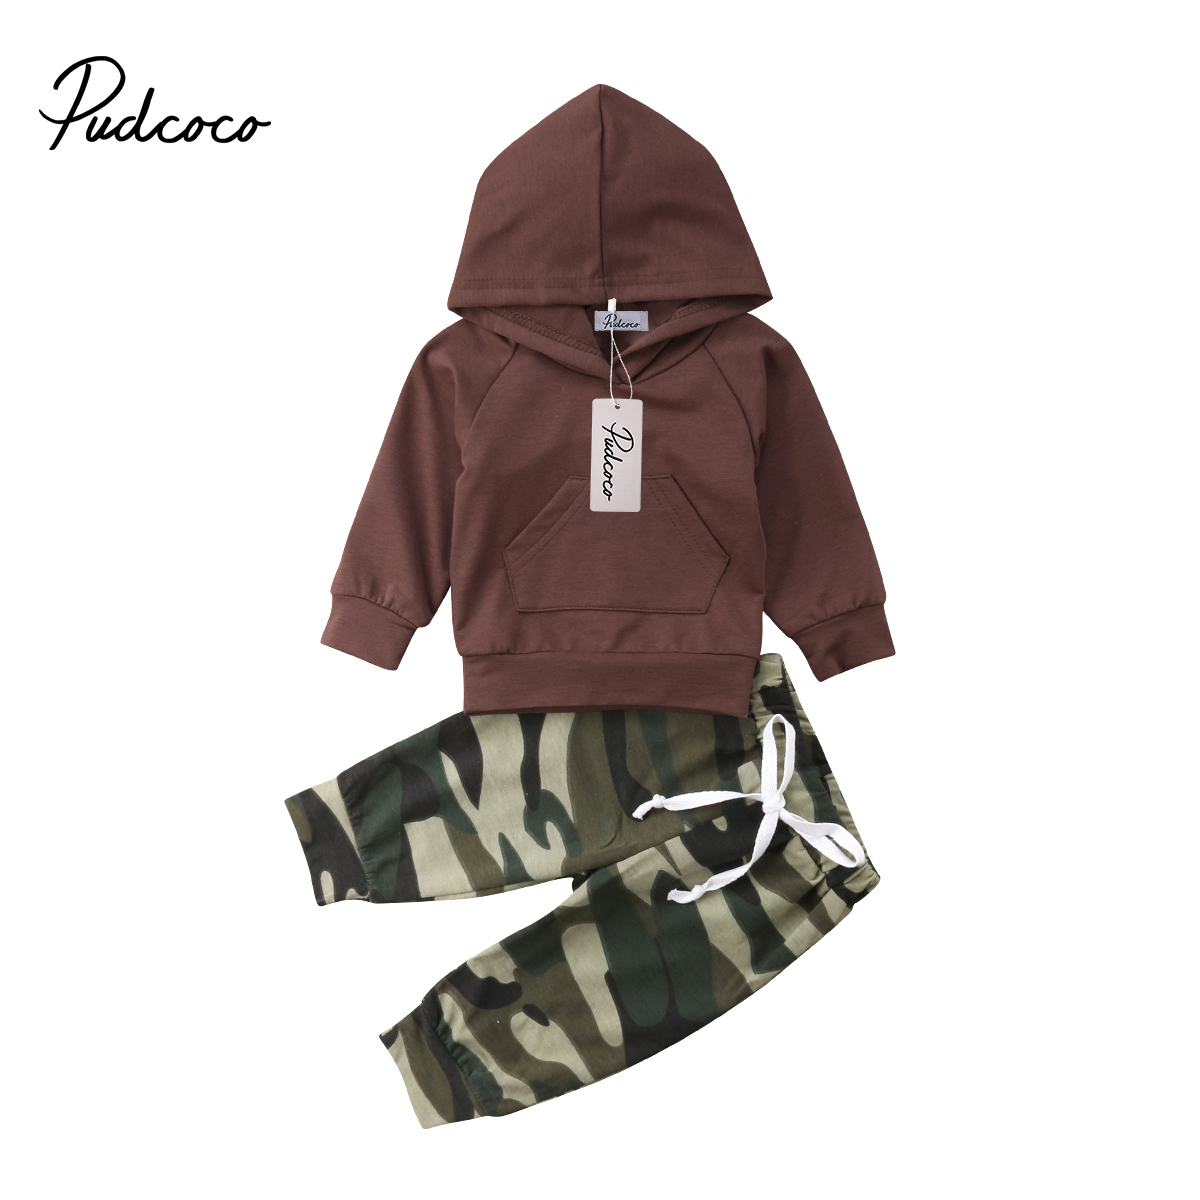 best top boy hoodie pants ideas and get free shipping - ihybasud-23